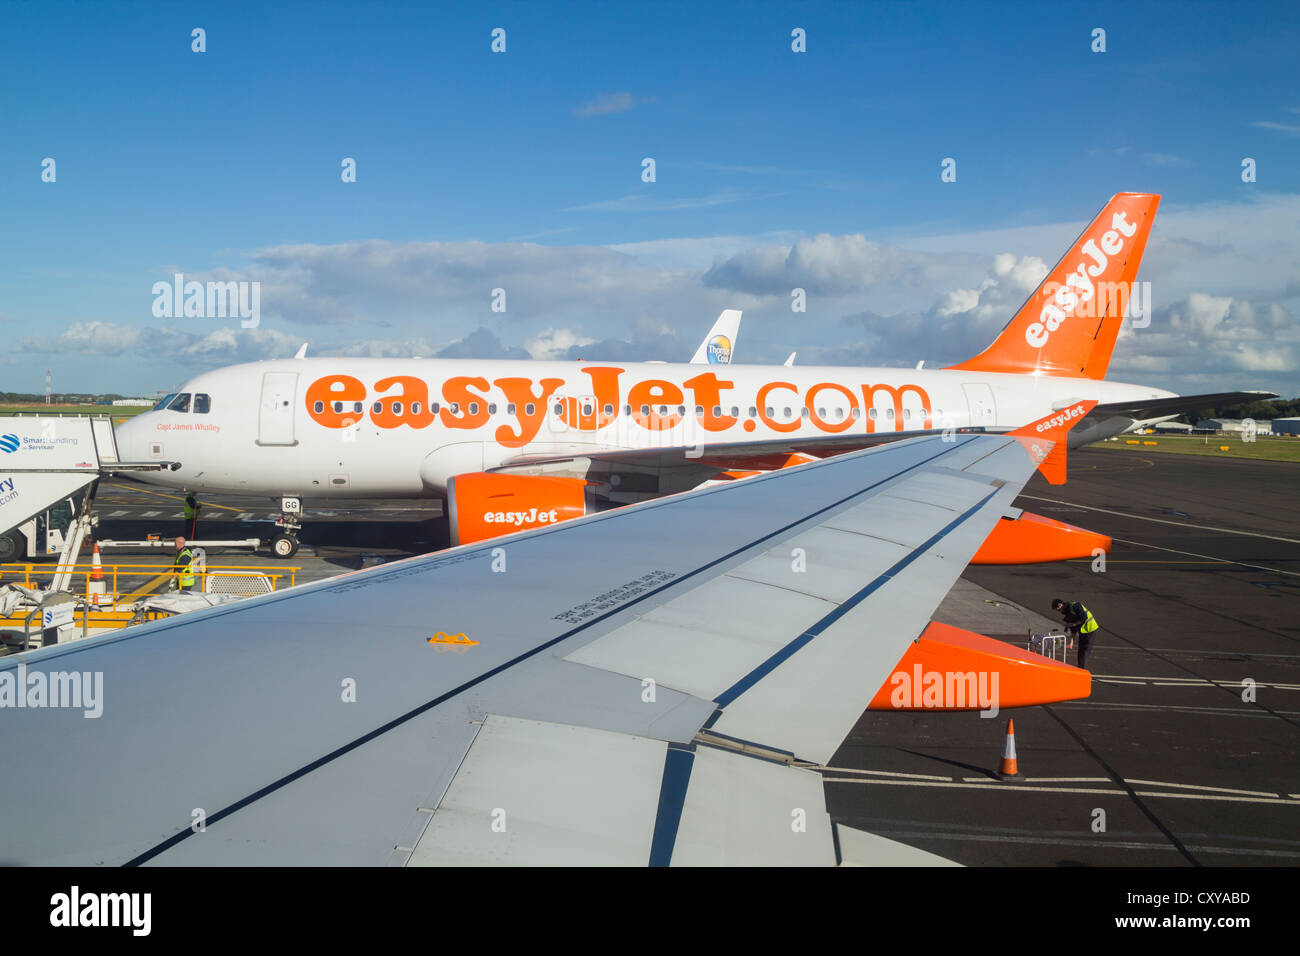 esy jet airplanes on runway at newcastle airport england uk